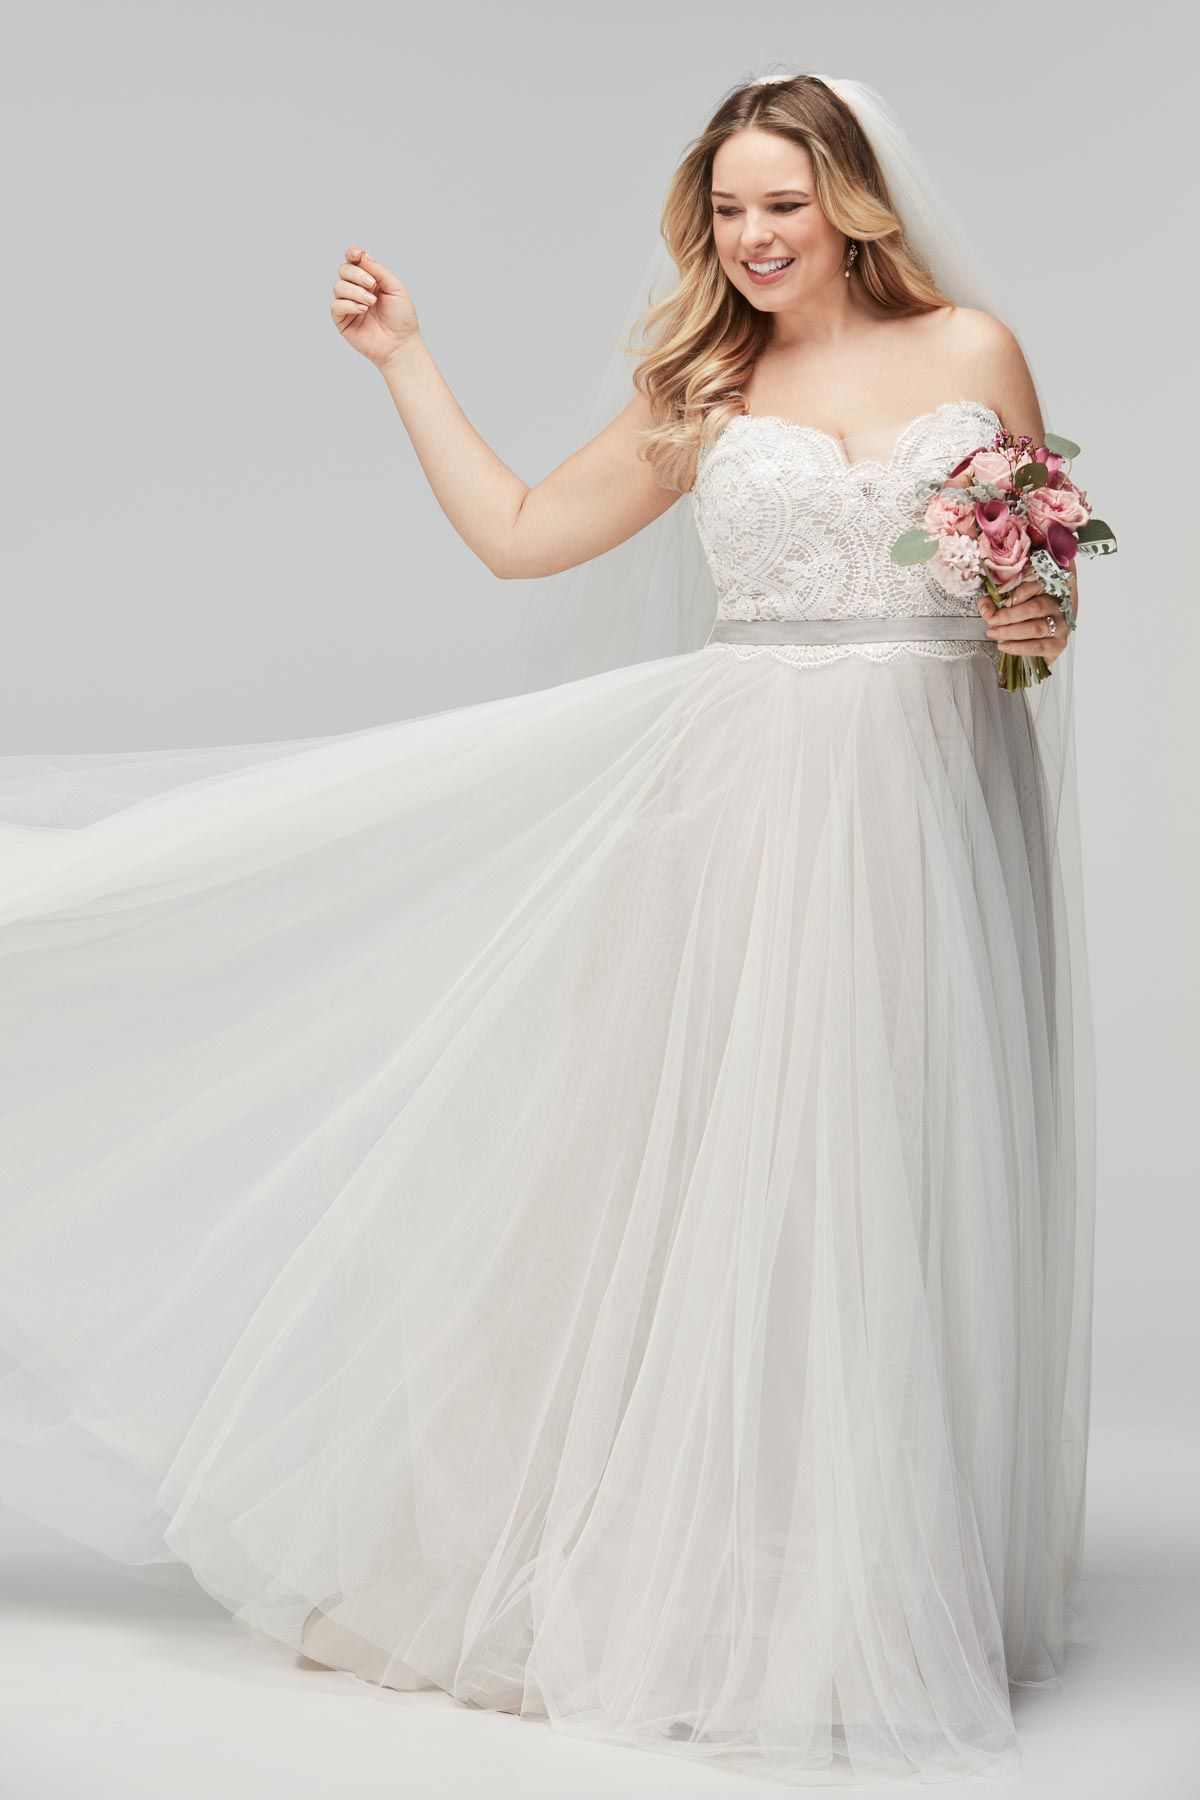 Plus Size Bridal Gown The Della By Wtoo Watters Curvy Bride Ivorybridalatl